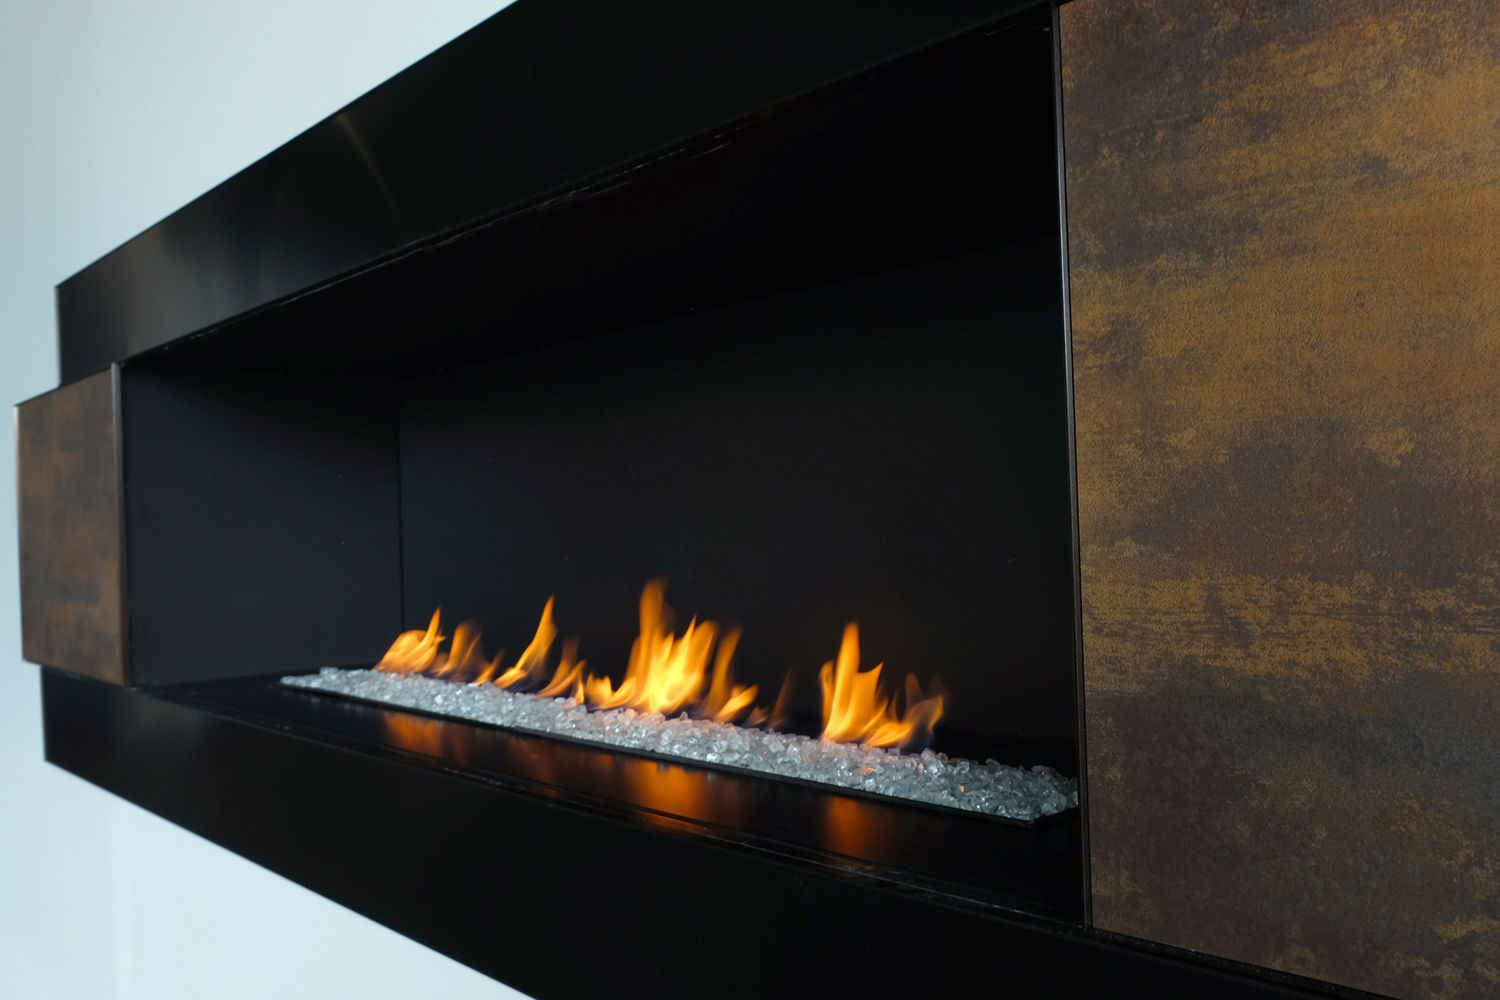 H Series By European Home Designer Surround Close Up European House Gas Fireplace Modern Fireplace